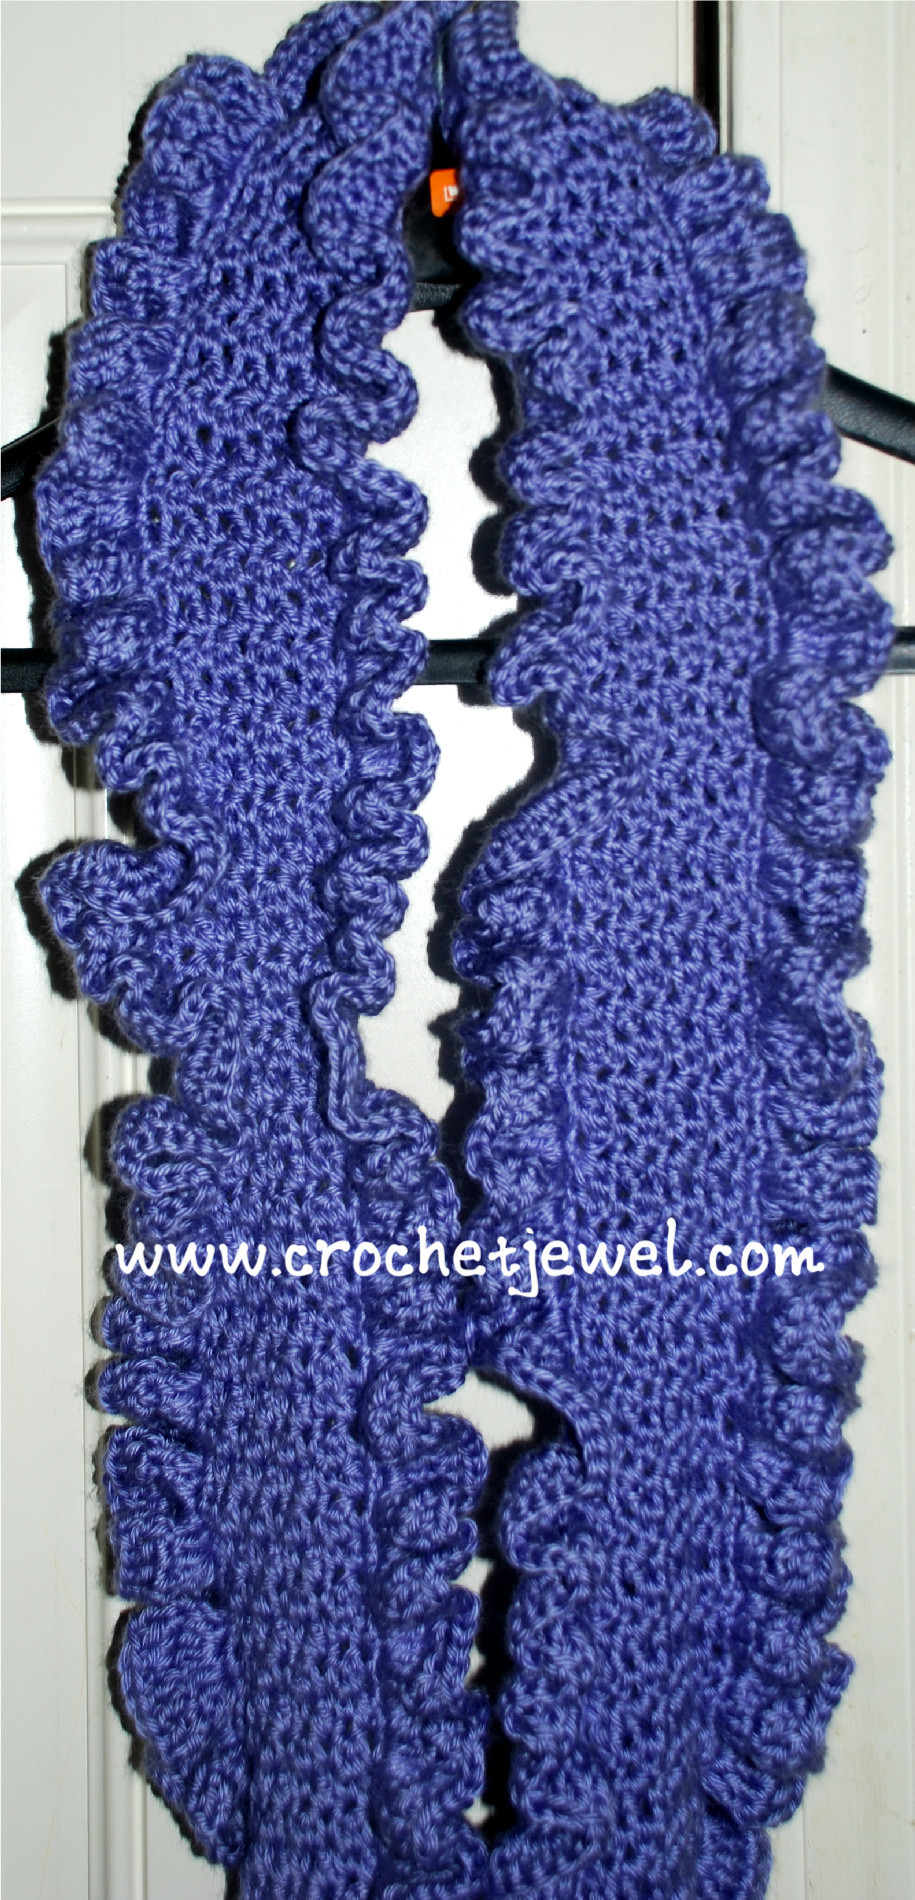 Luxury Crochet Ruffle Scarf Instructions Crochet Ruffle Scarf Of Lovely 41 Models Crochet Ruffle Scarf